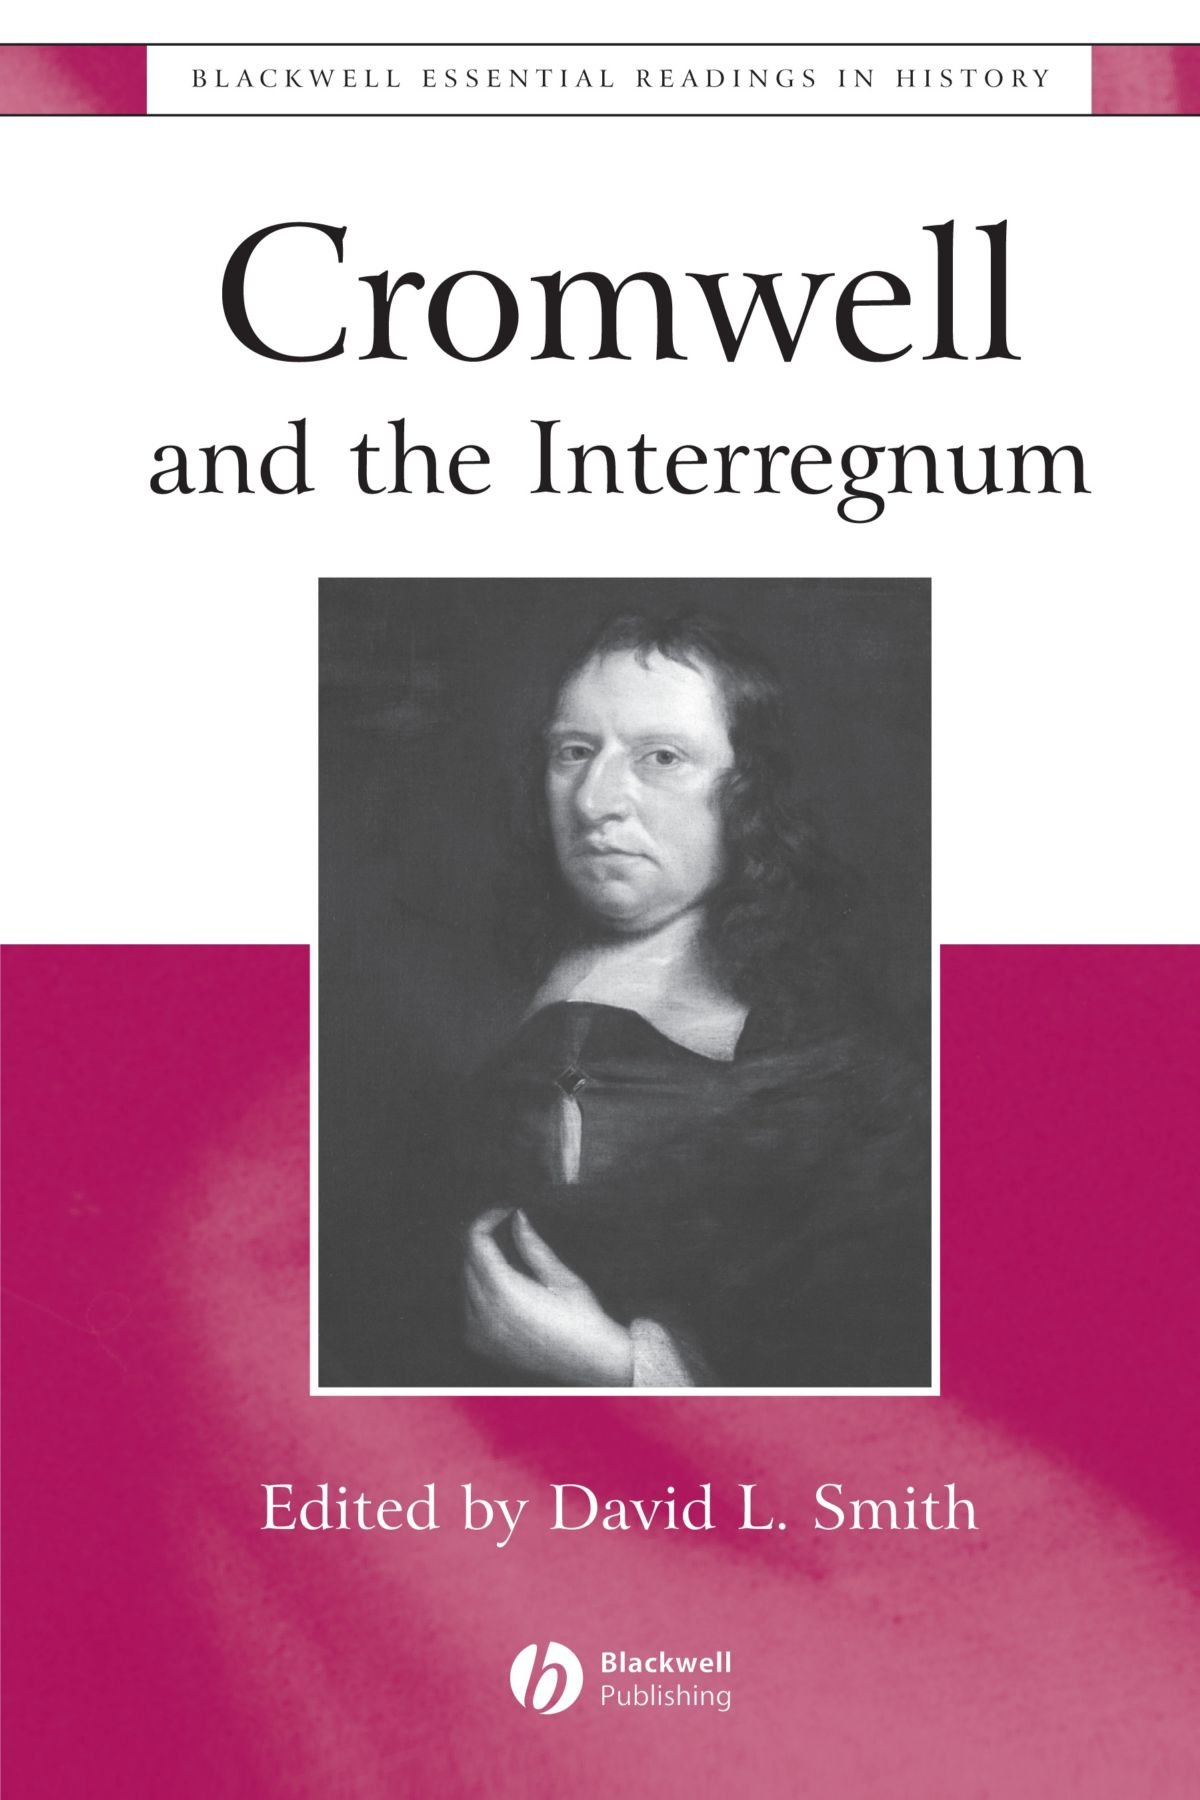 oliver cromwell and the english revolution amazon co uk john cromwell and interregnum the essential readings blackwell essential readings in history